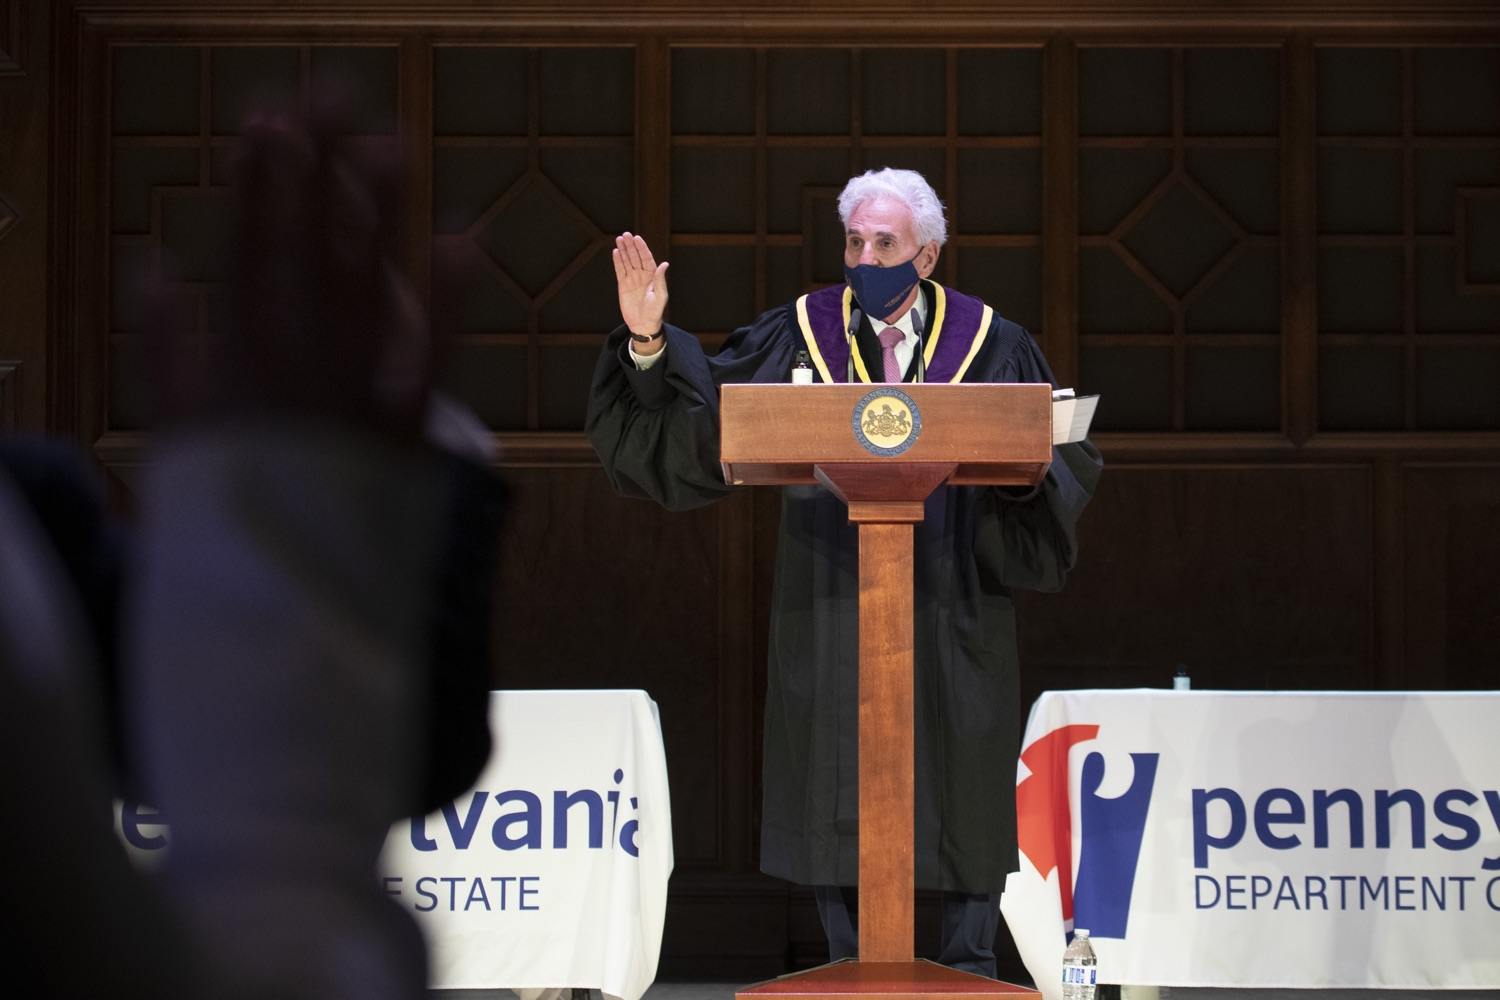 """<a href=""""https://filesource.wostreaming.net/commonwealthofpa/photo/18323_59_electoral_college_dz_023.jpg"""" target=""""_blank"""">⇣Download Photo<br></a>Justice Max Baer swearing in Electors. Secretary of State Kathy Boockvar presided over the 59th Pennsylvania Electoral College meeting at noon today, during which the commonwealths 20 electors unanimously voted for Joseph R. Biden for president and Kamala D. Harris for vice president of the United States.  Harrisburg, PA  December 14, 2020"""